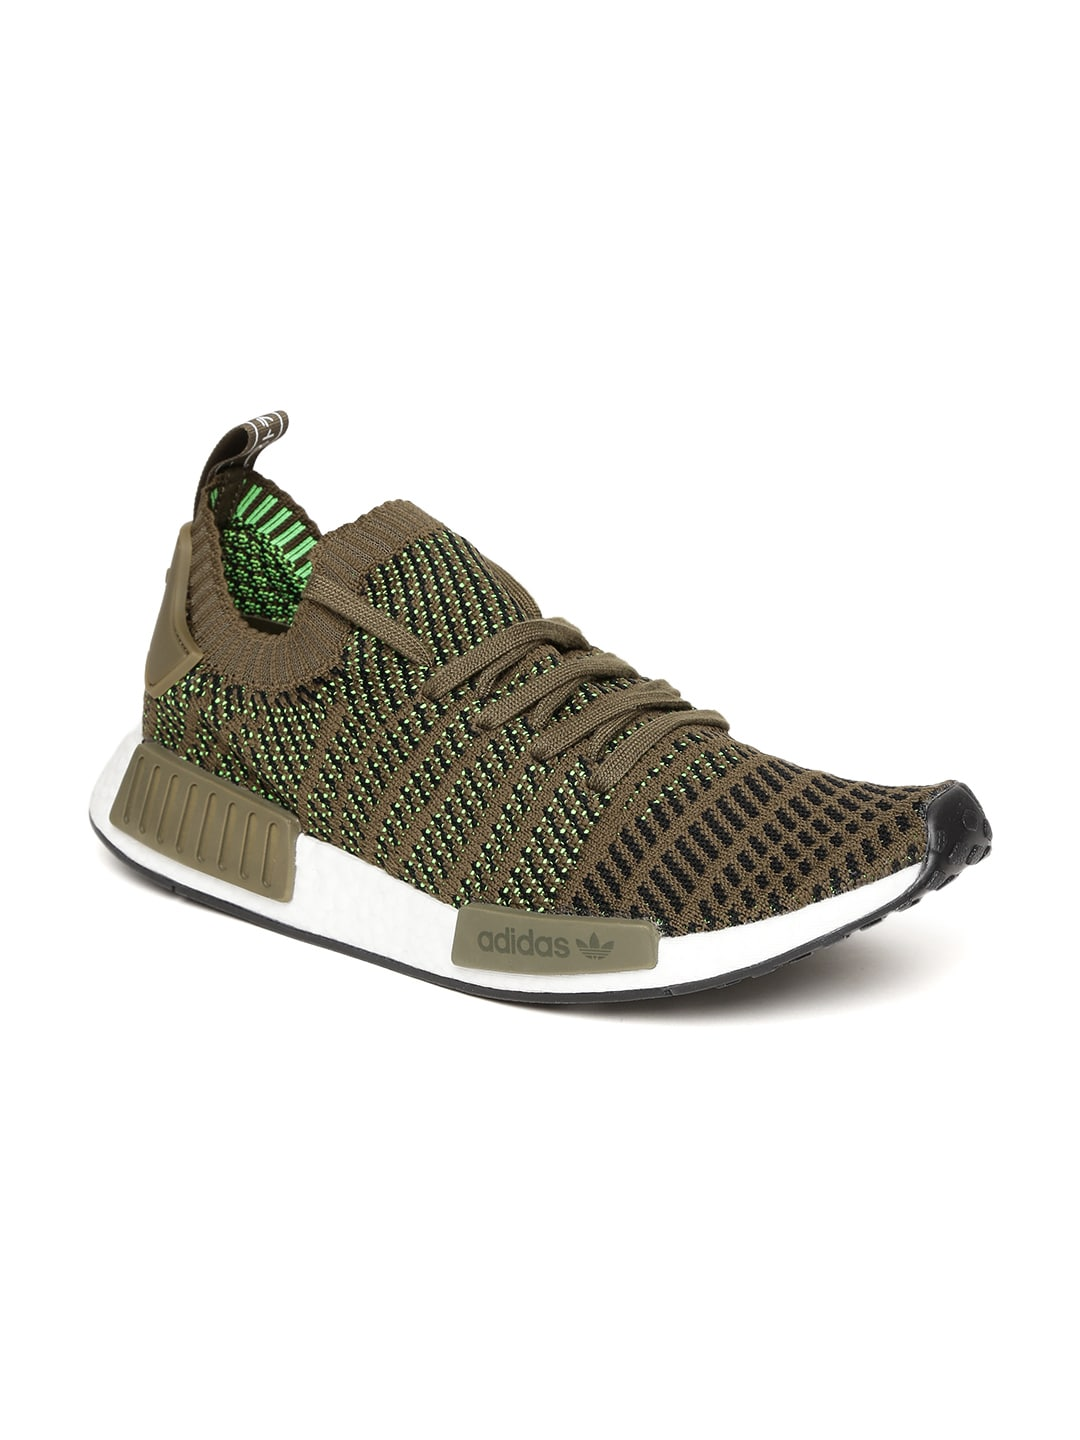 9389cd35207632 Adidas Men Olive Casual Shoes - Buy Adidas Men Olive Casual Shoes online in  India